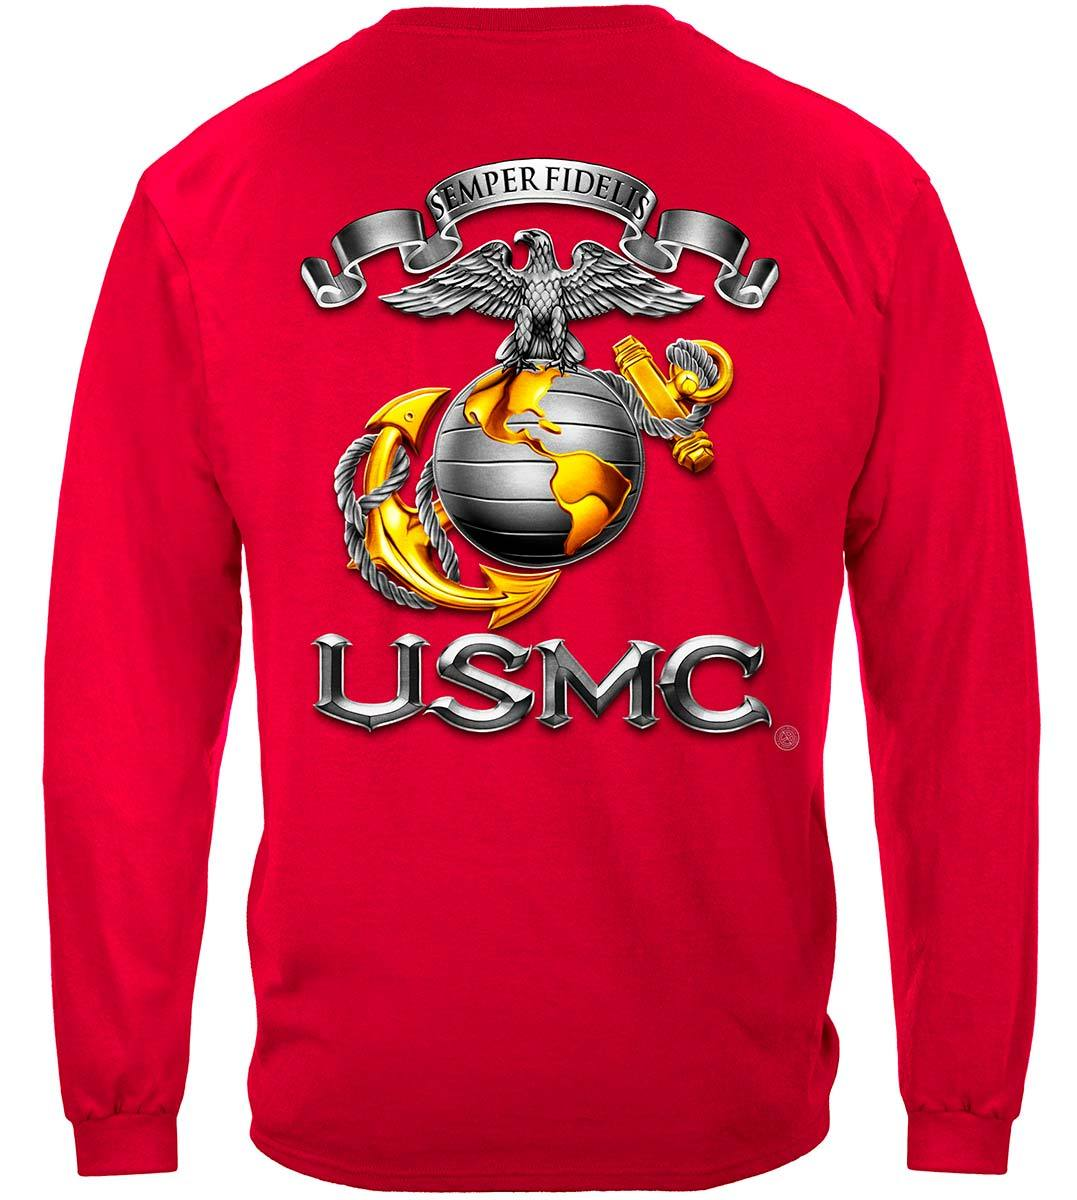 USMC-Semper Fidelis Premium Long Sleeves